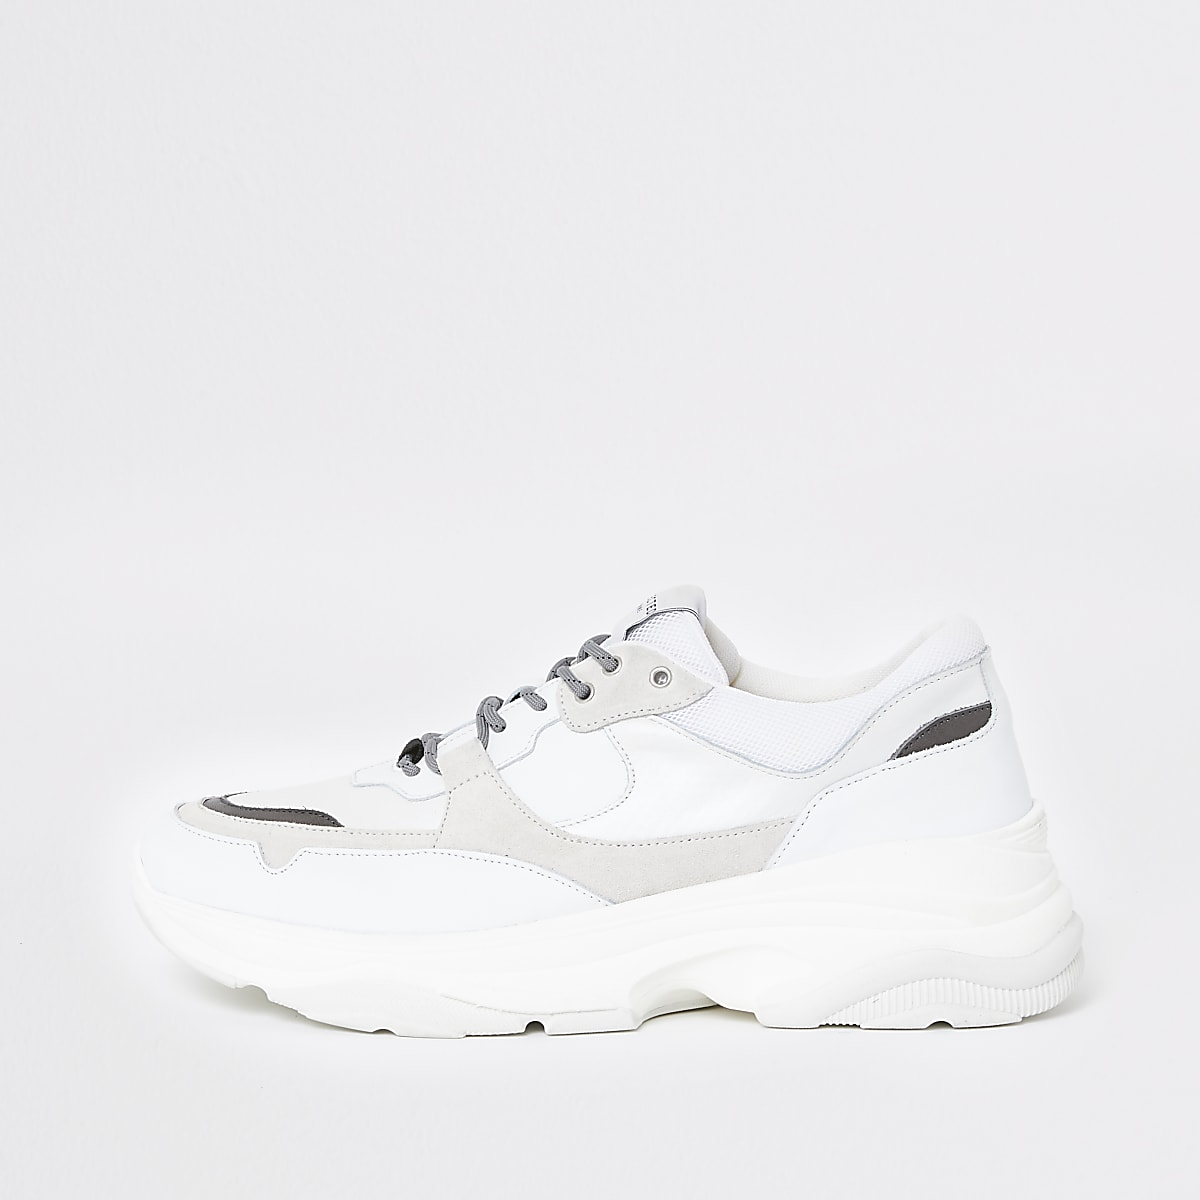 Selected Homme white chunky runner trainers